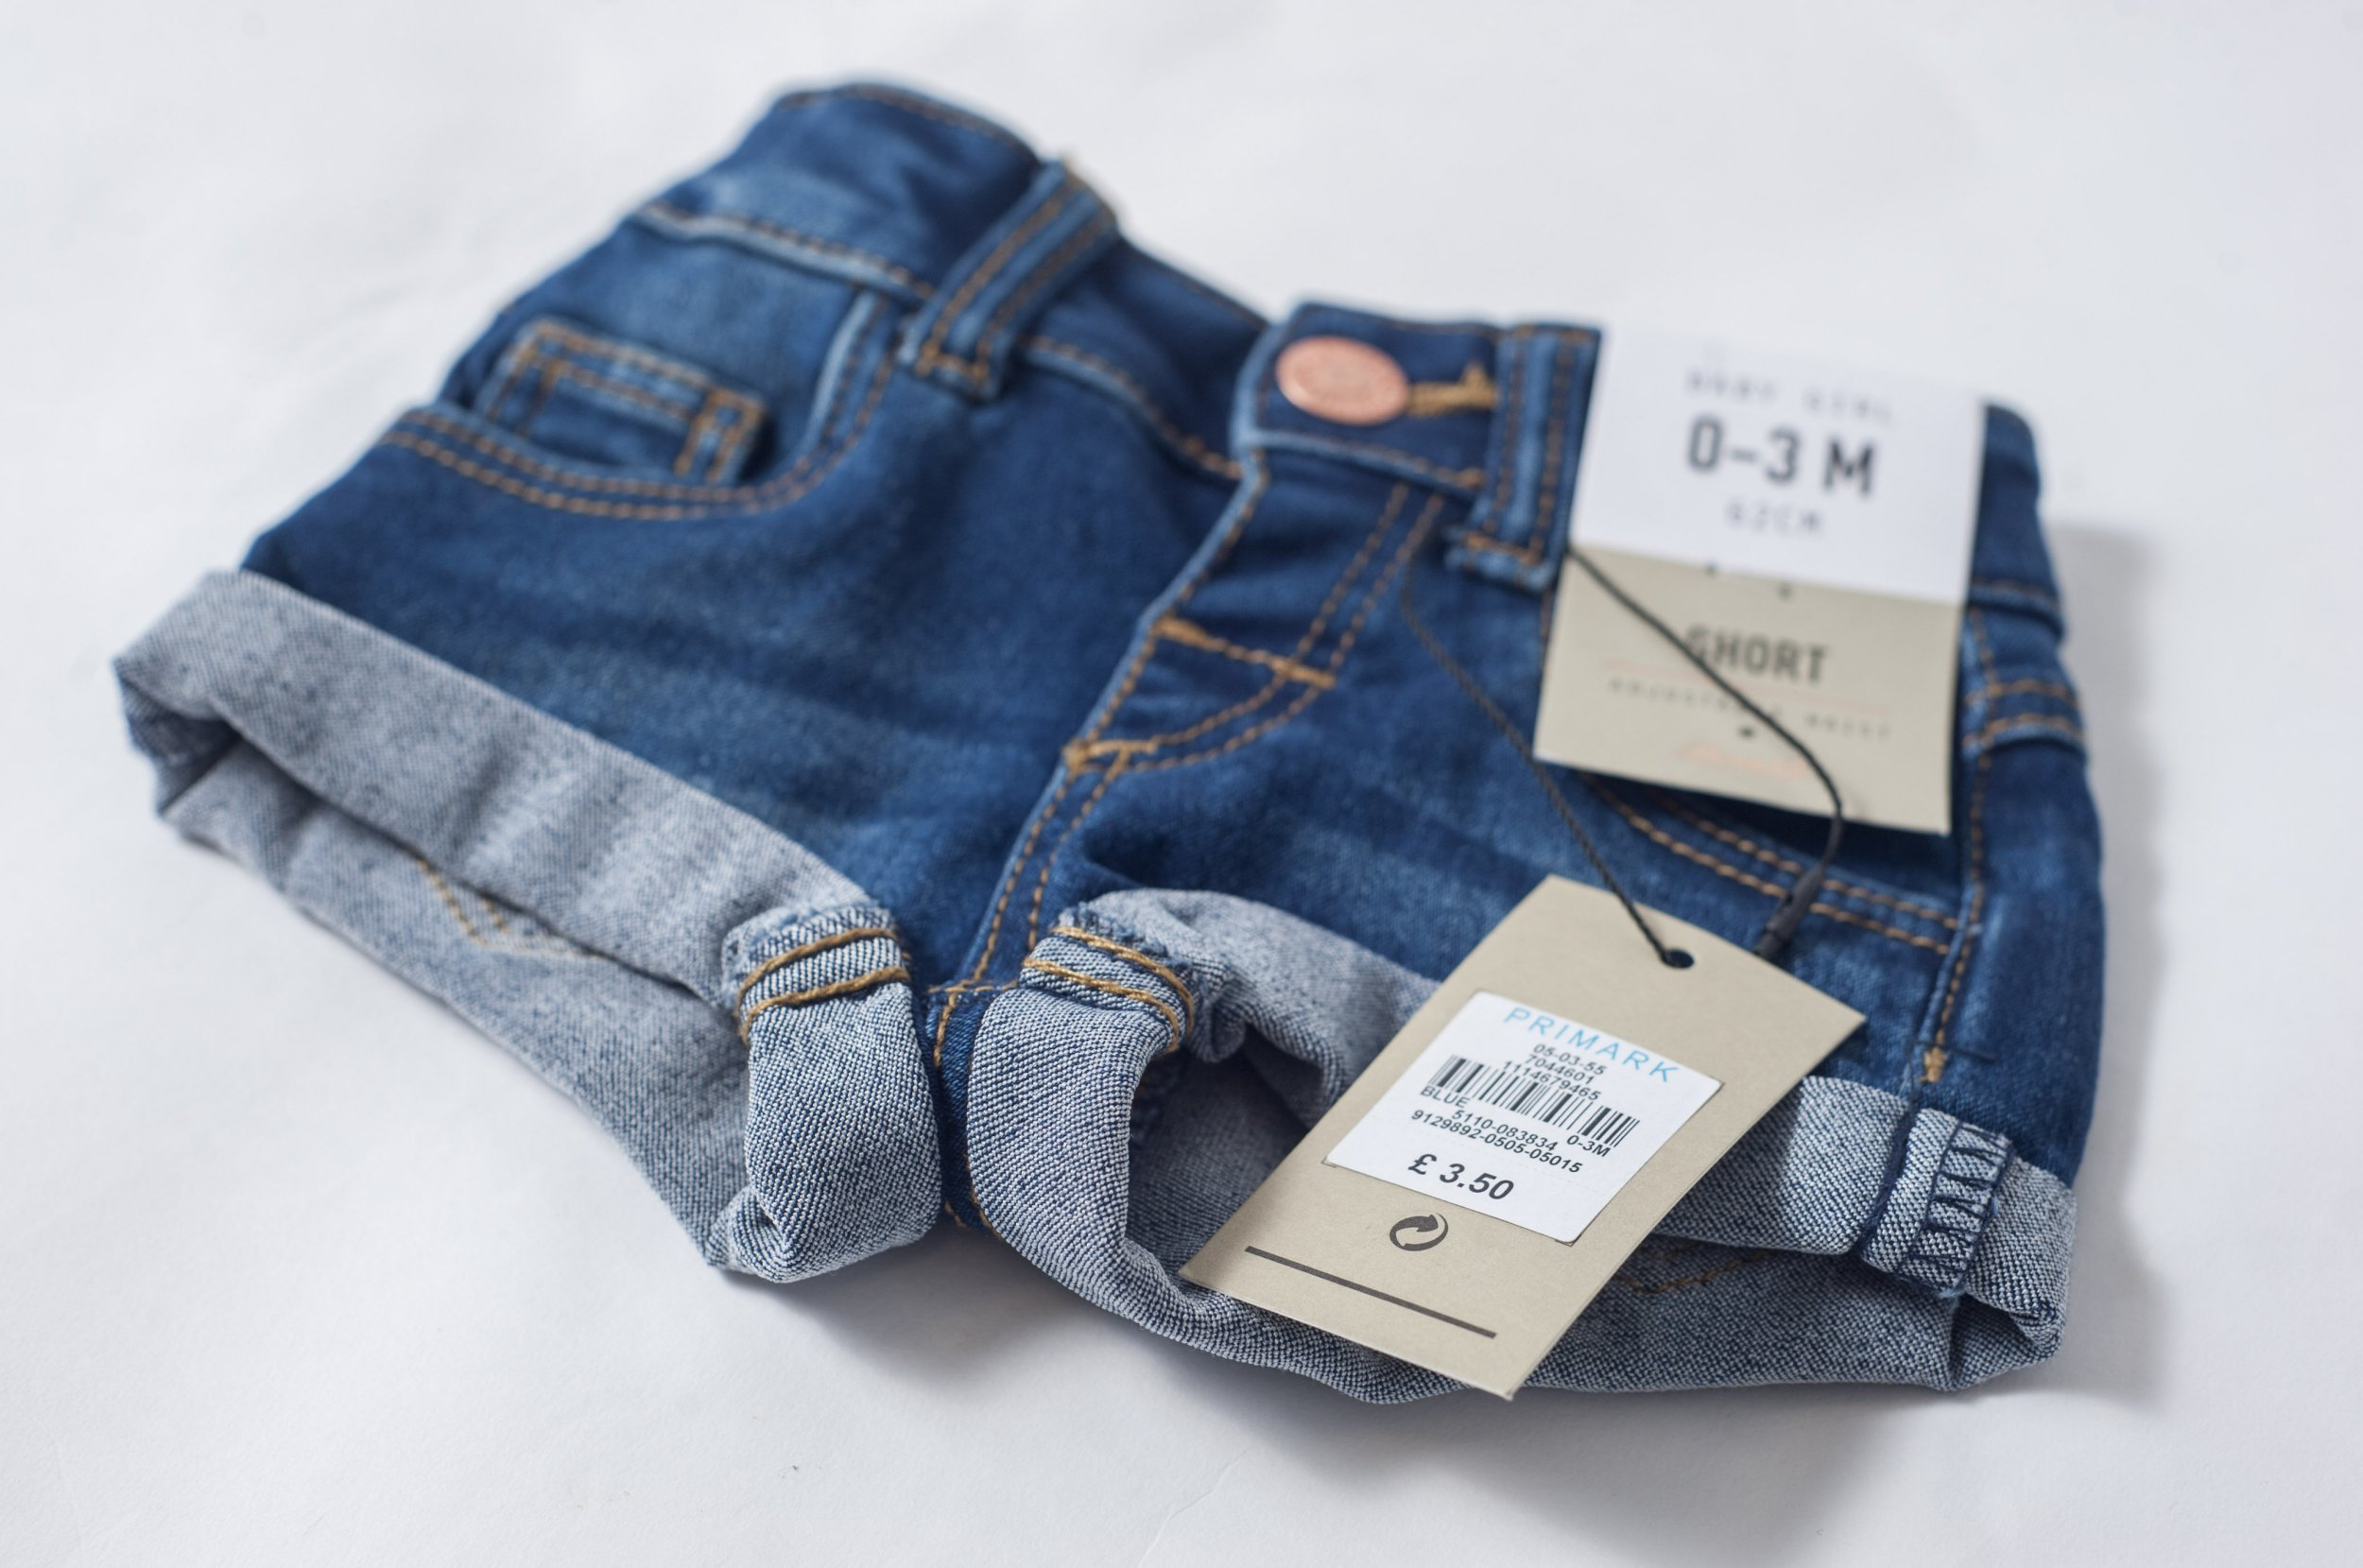 Primark Girls Denim Outfits 0-3 Months Outfits & Sets